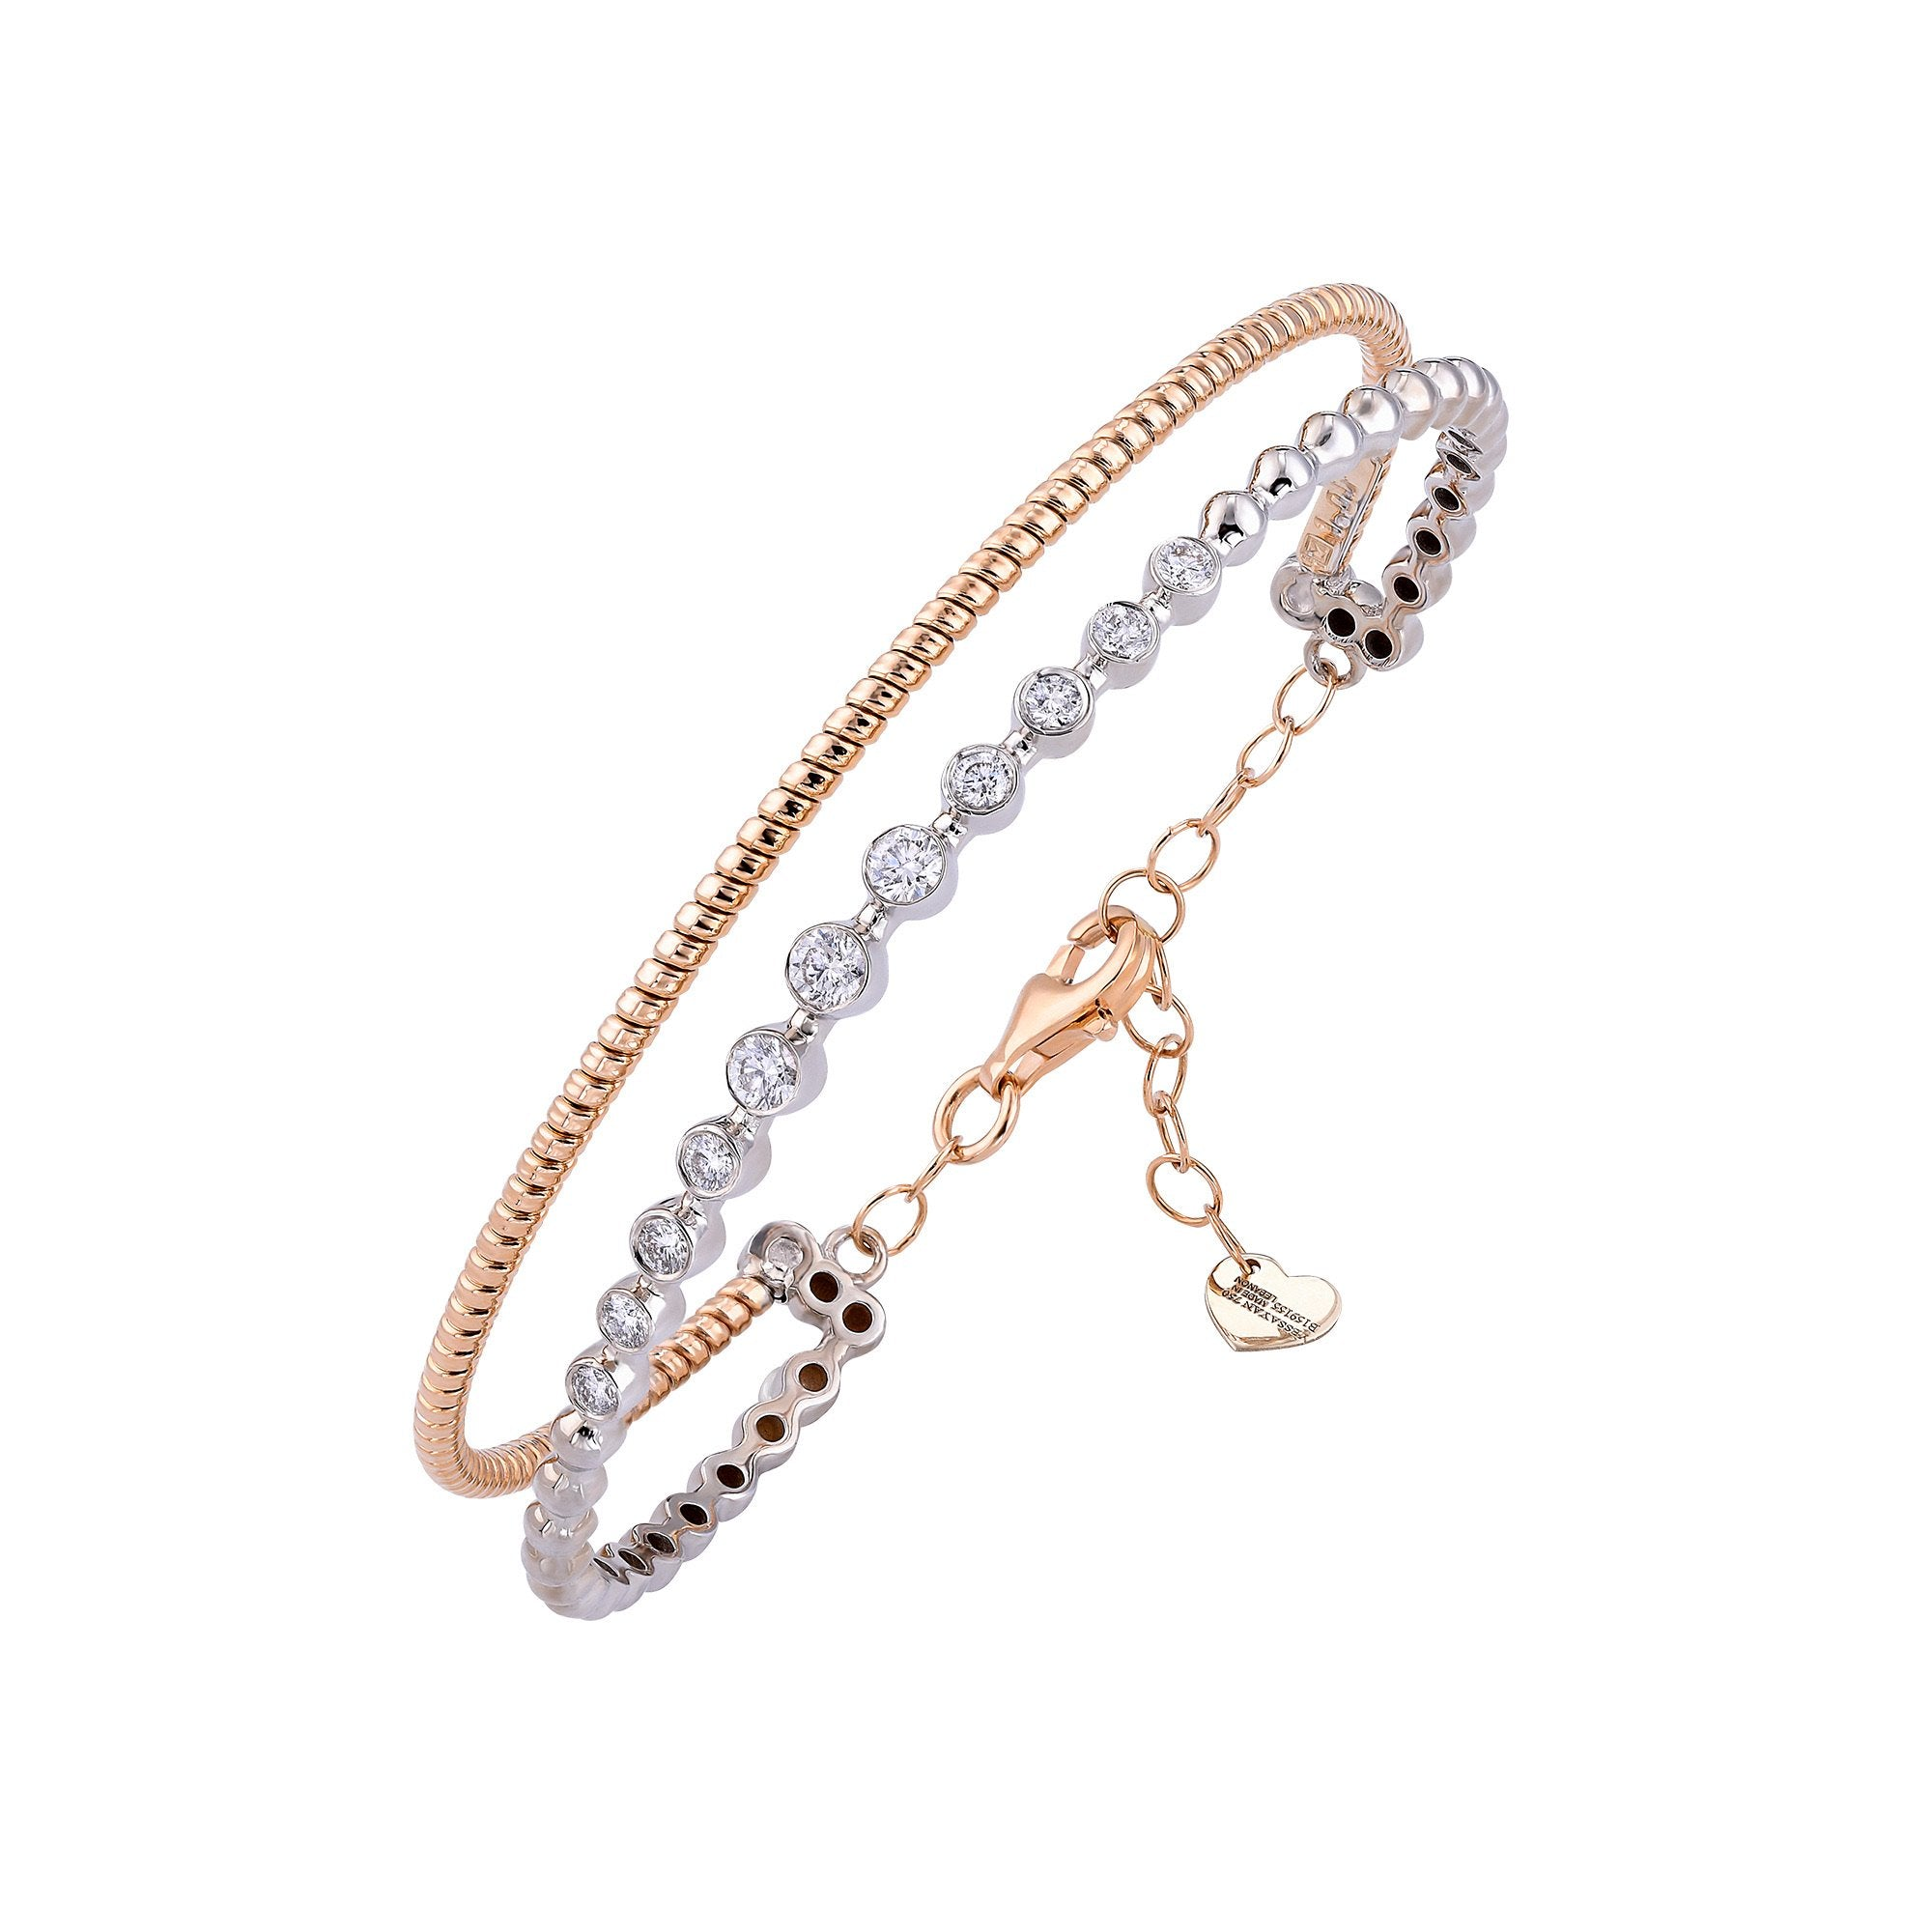 Rose Gold & Diamond Cuff Bracelet